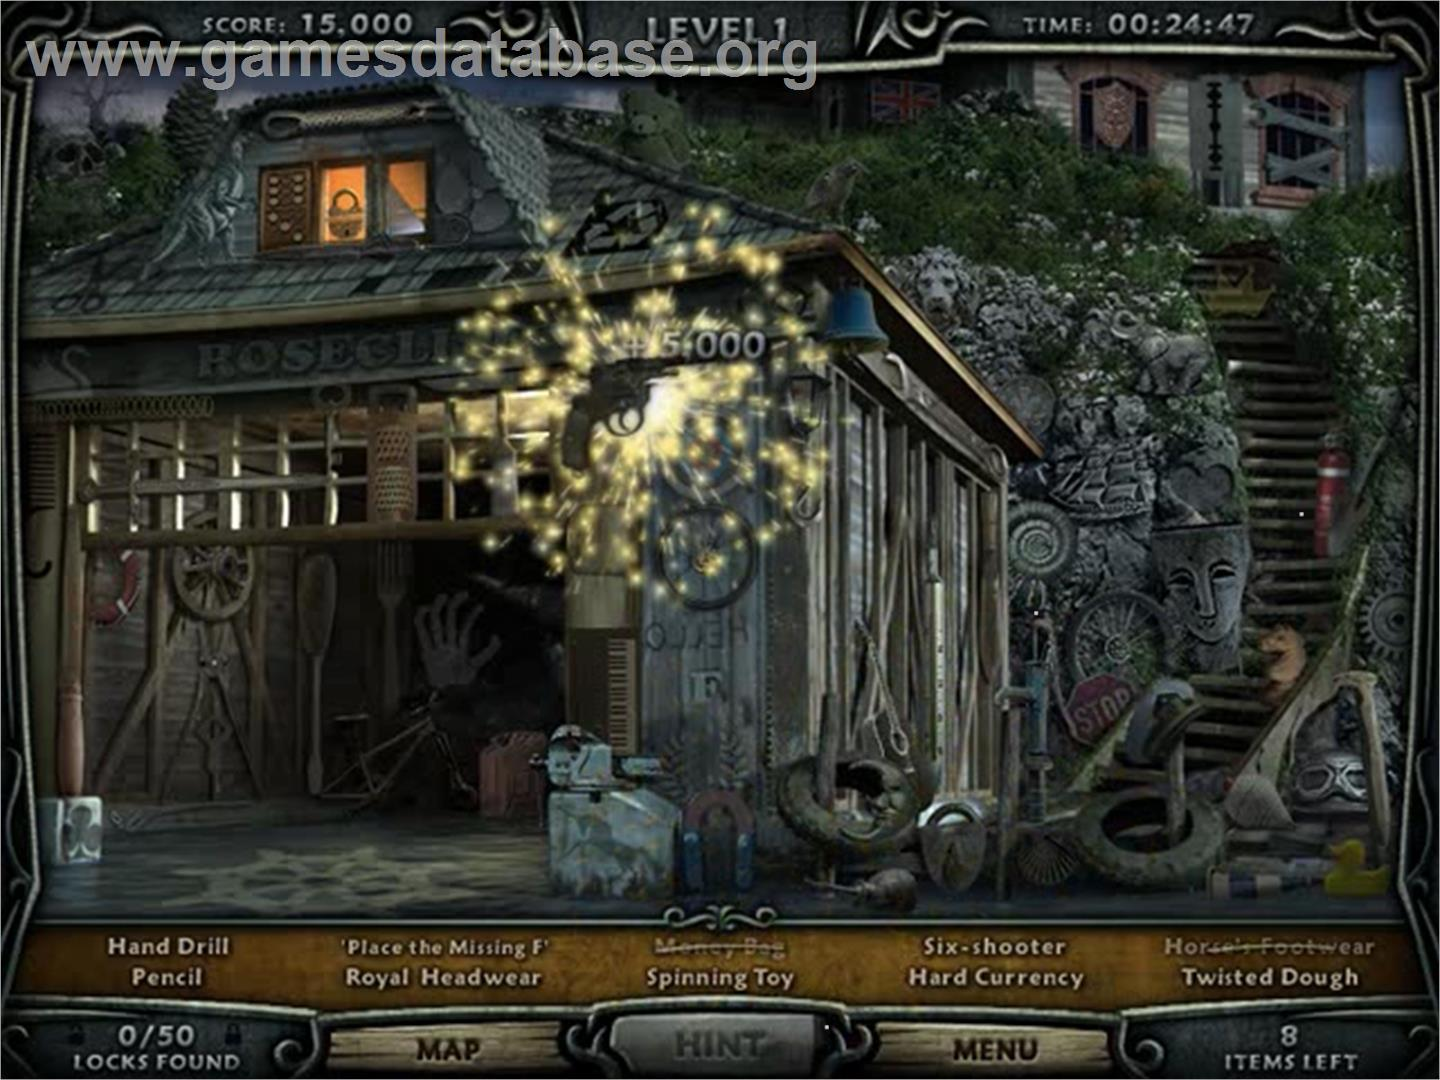 Free full pc and mac casual games for download » spintop games.